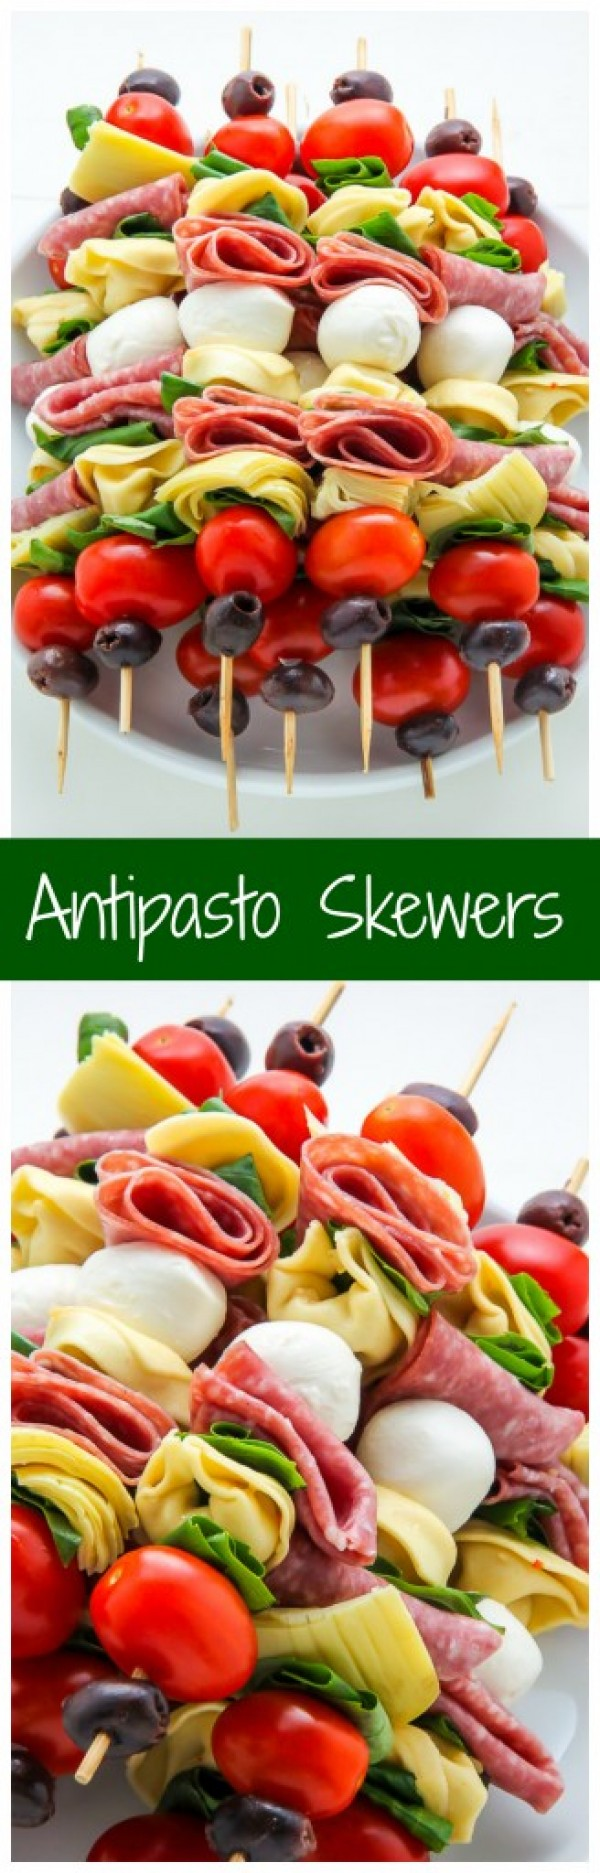 Get the recipe Antipasto Skewers @recipes_to_go